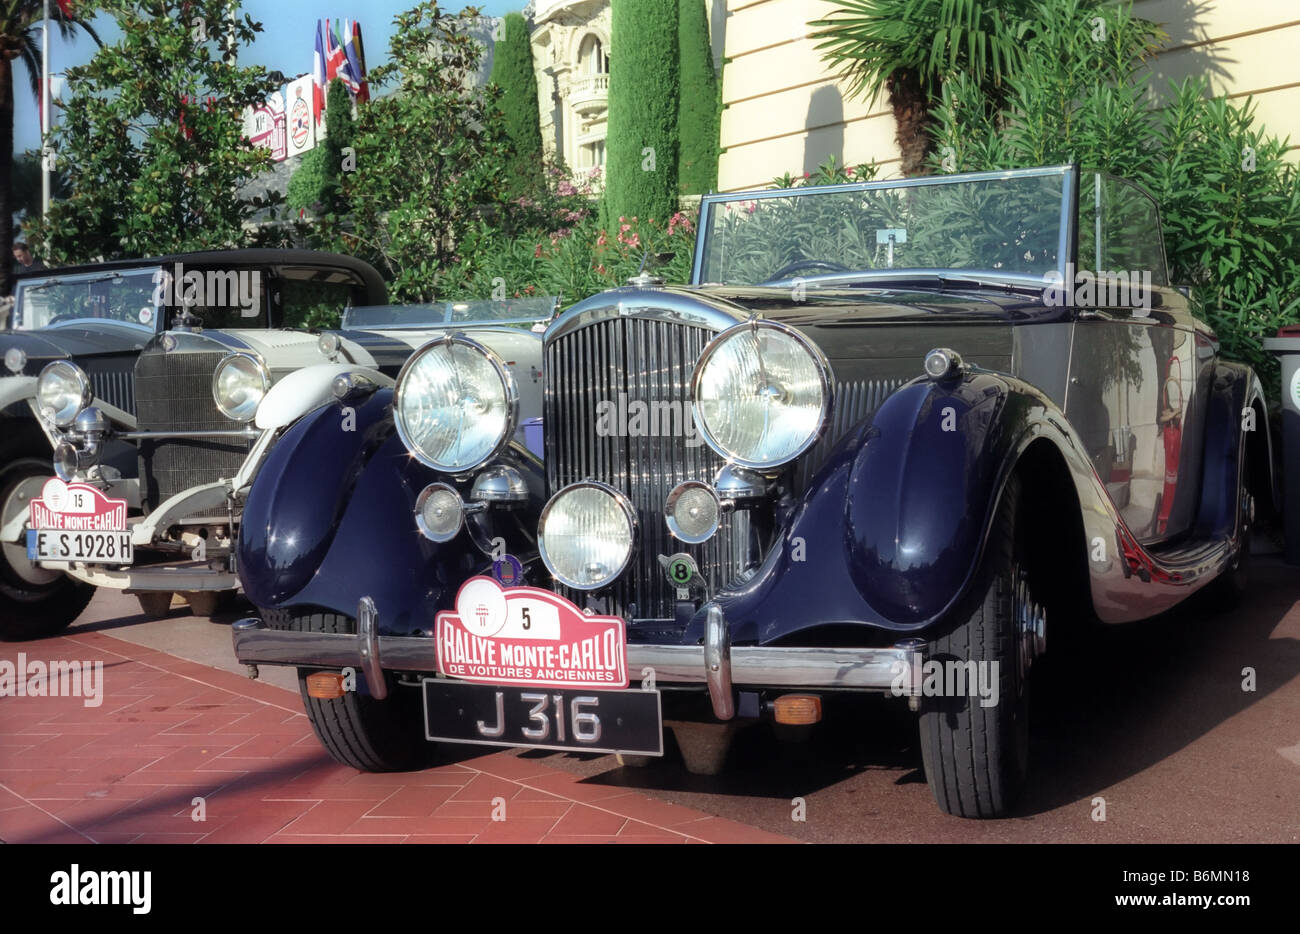 Classic cars in Monte Carlo rally Stock Photo, Royalty Free Image ...